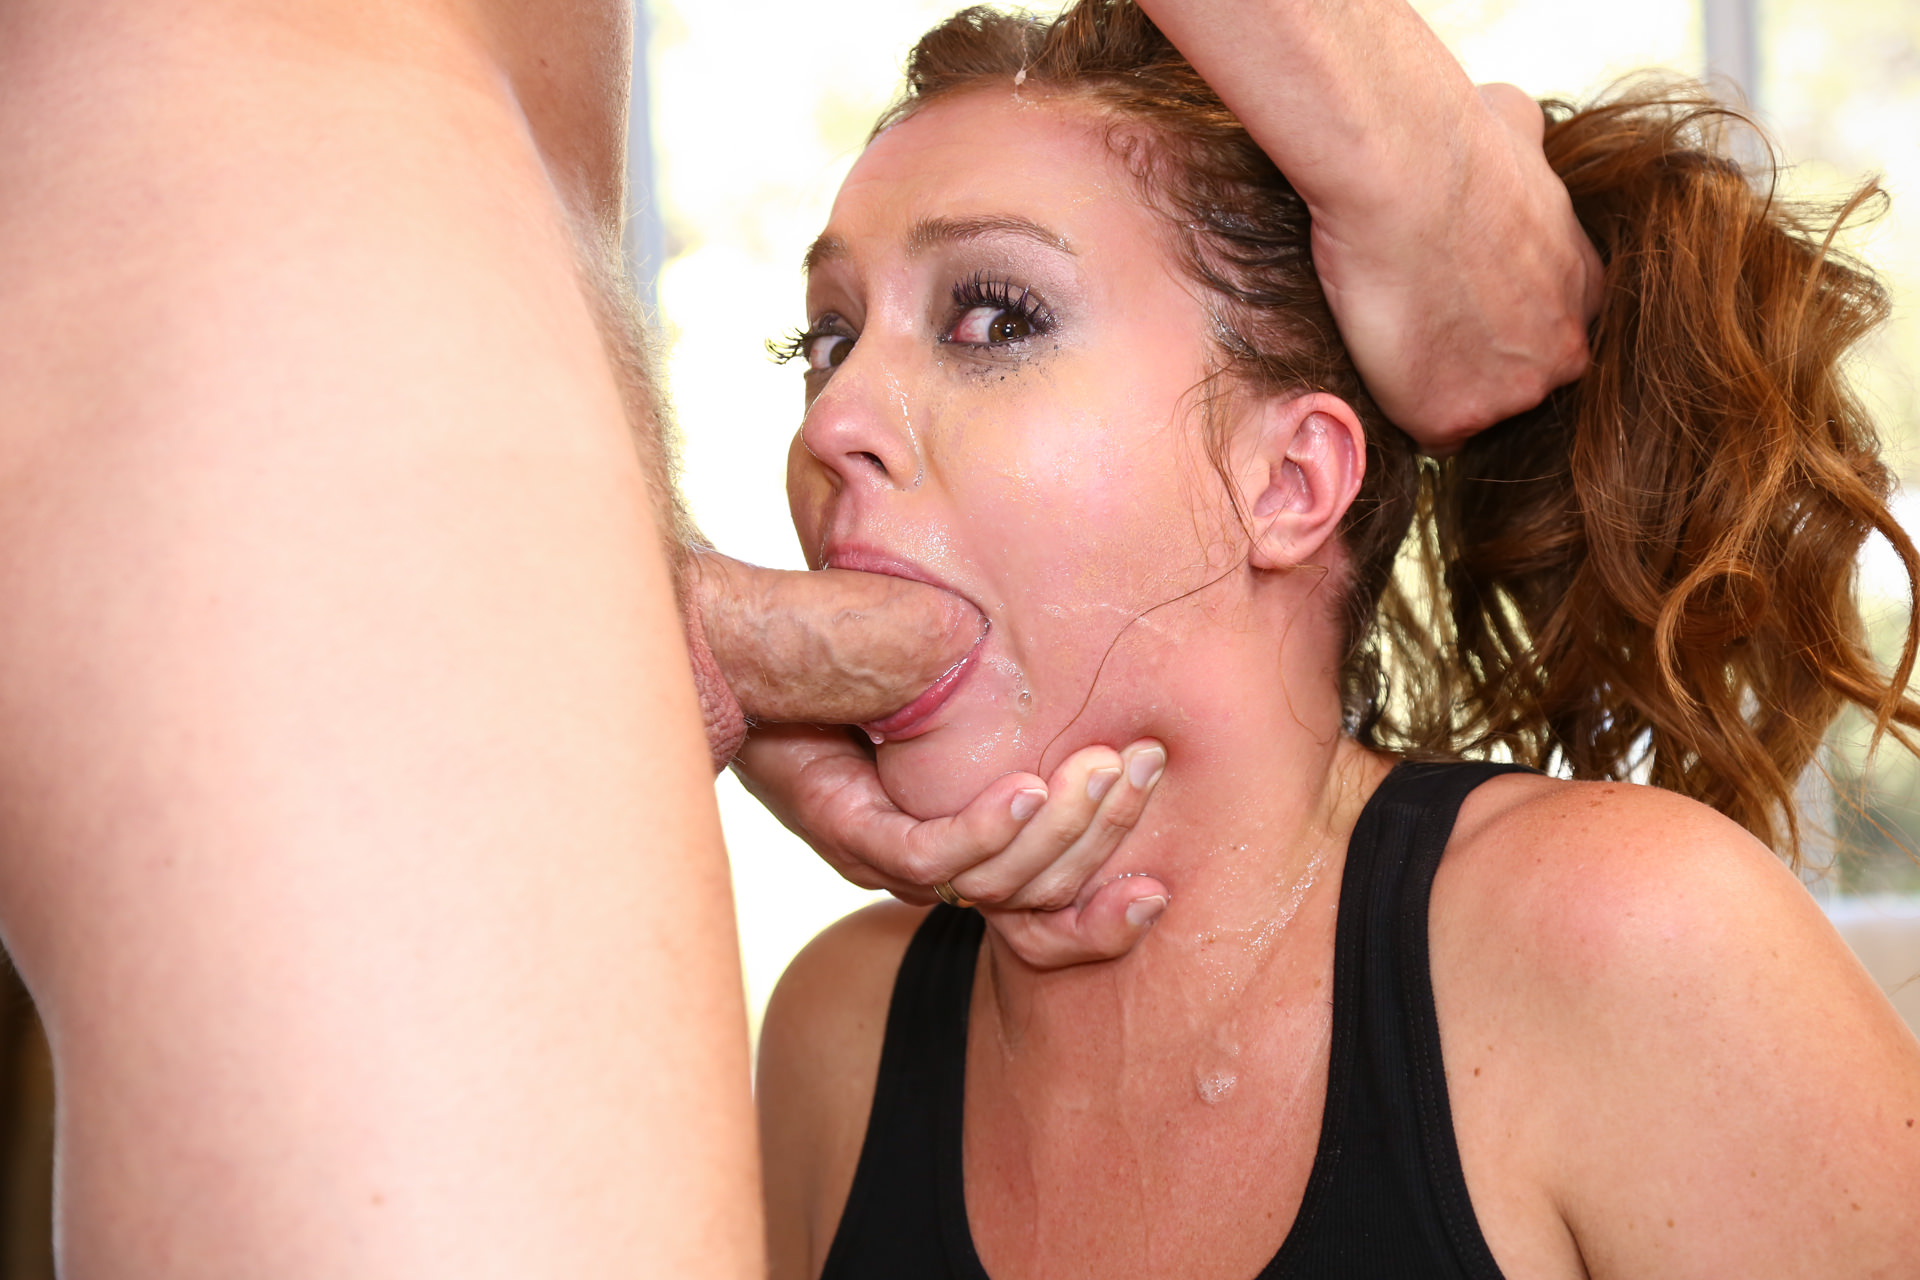 throat-fucked-xmovies